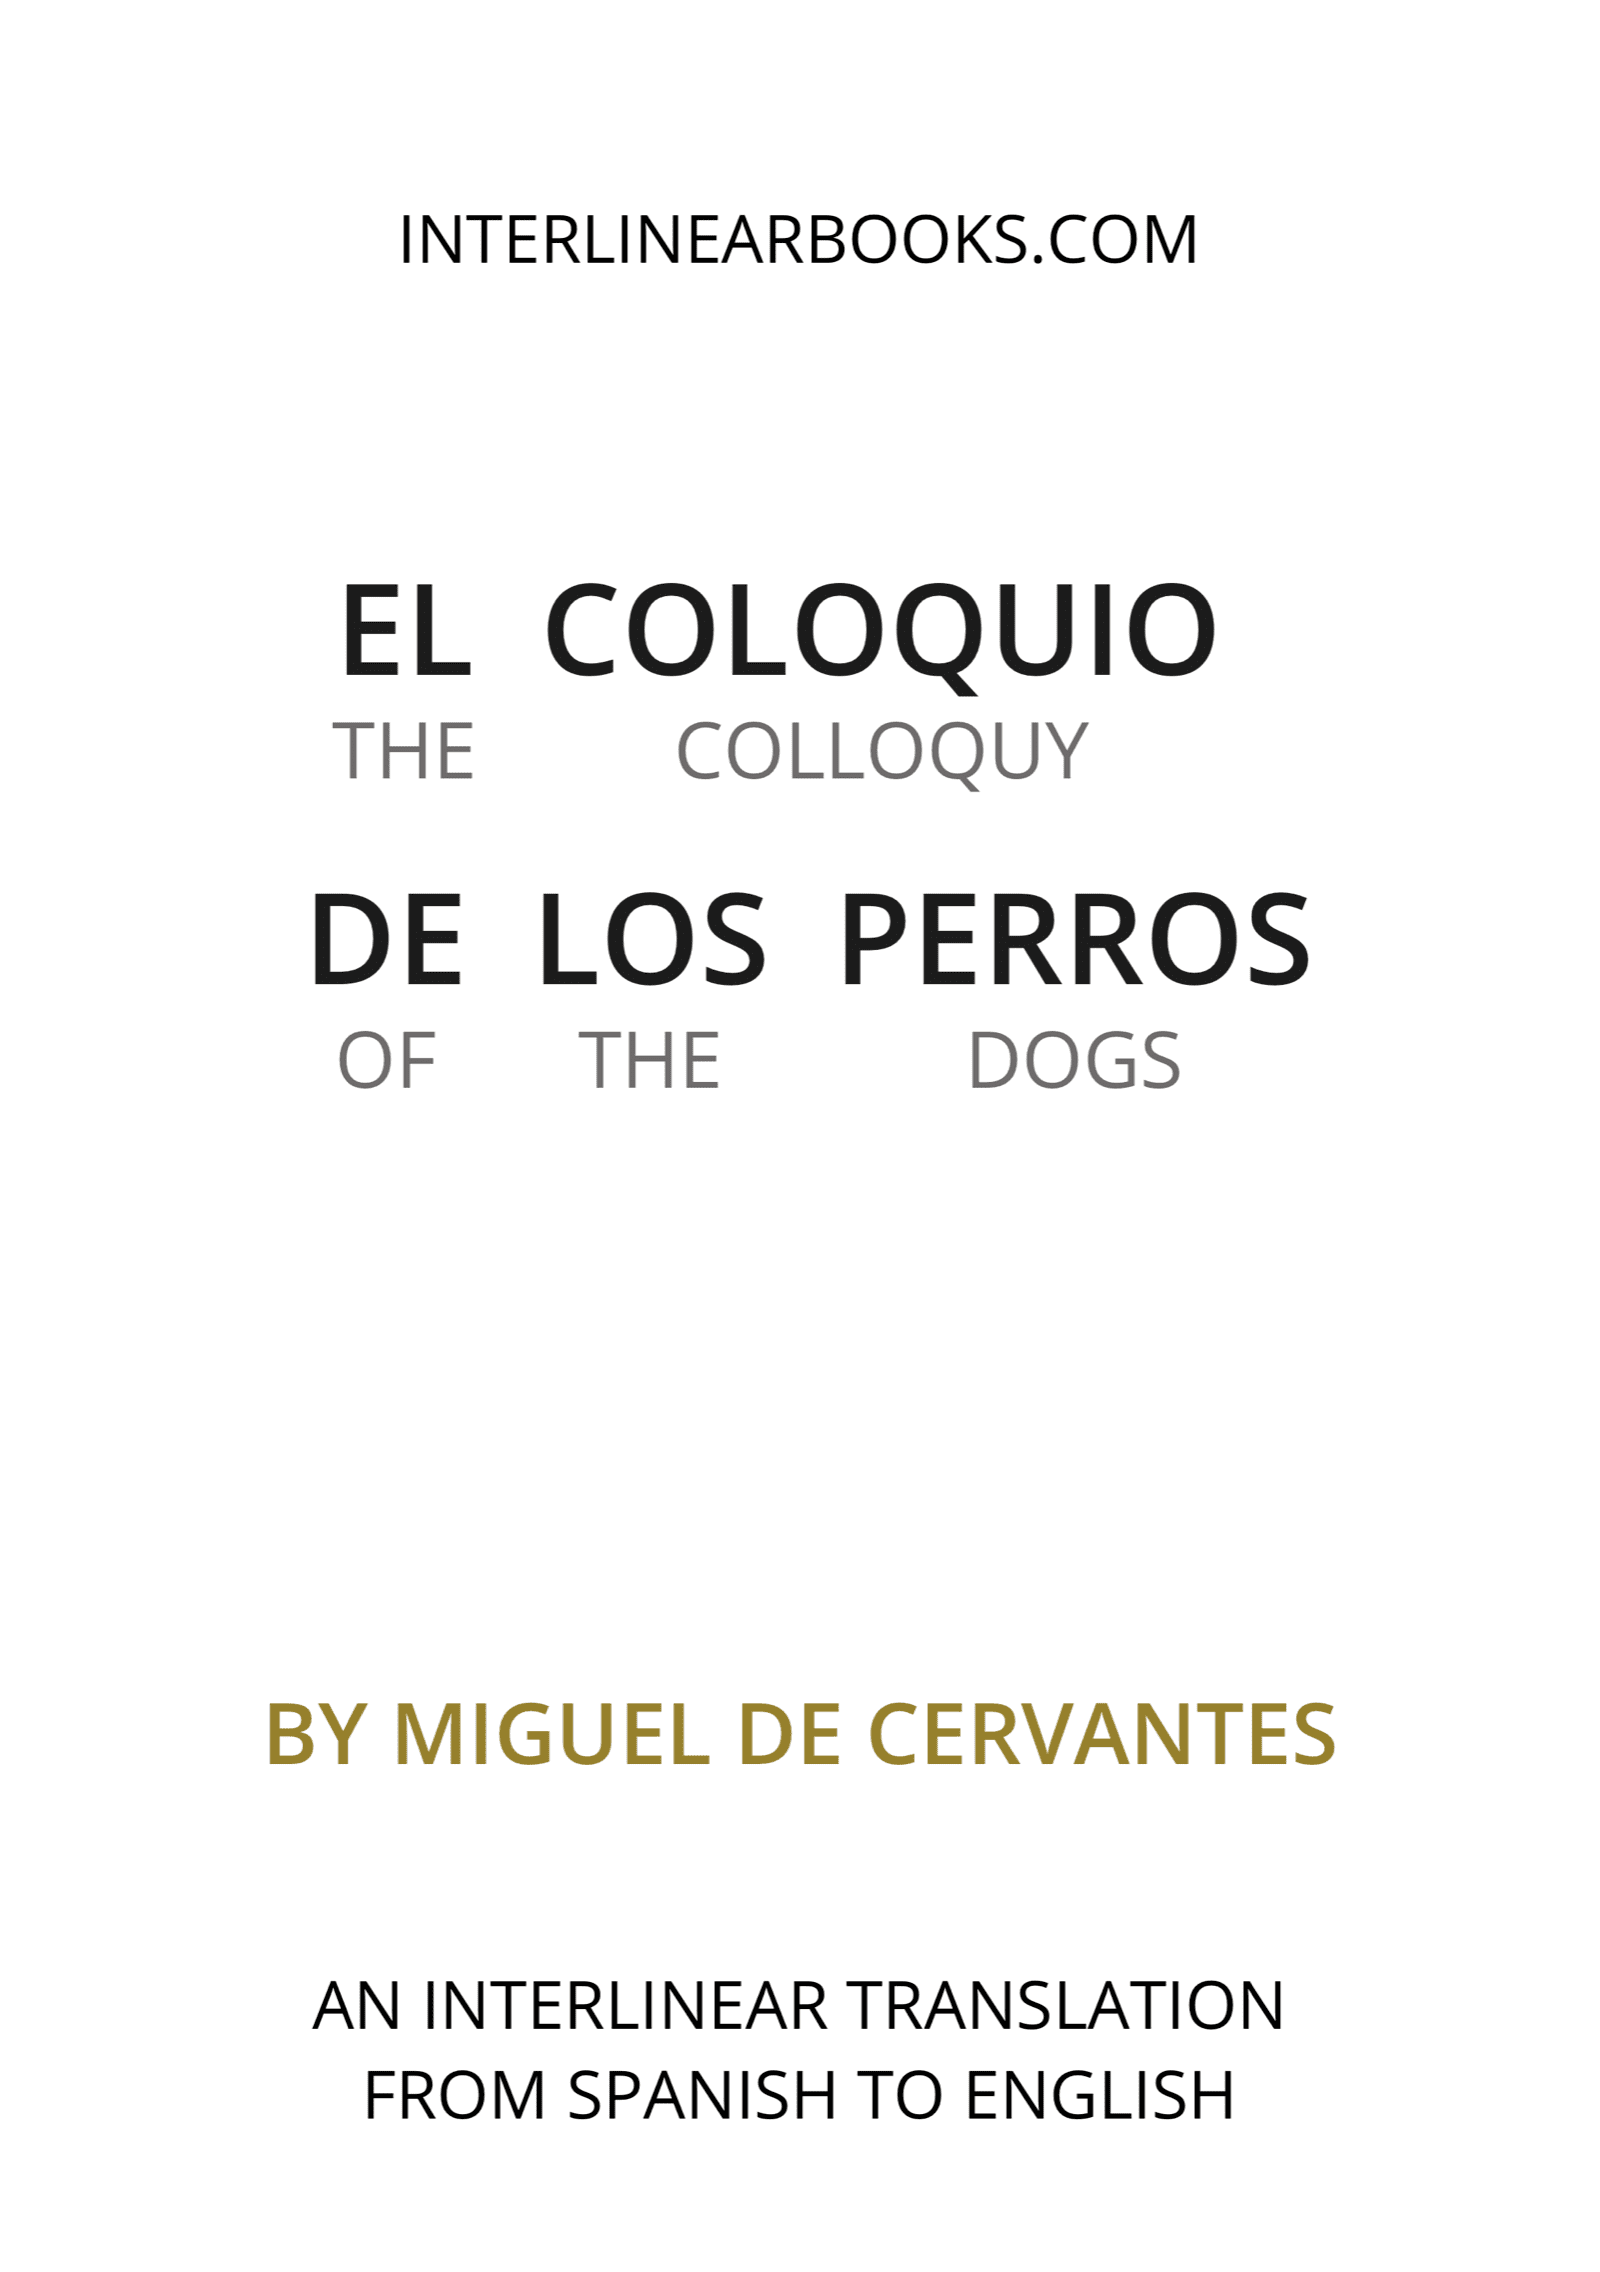 Spanish book: El coloquio de los perros / The Colloquy of the Dogs